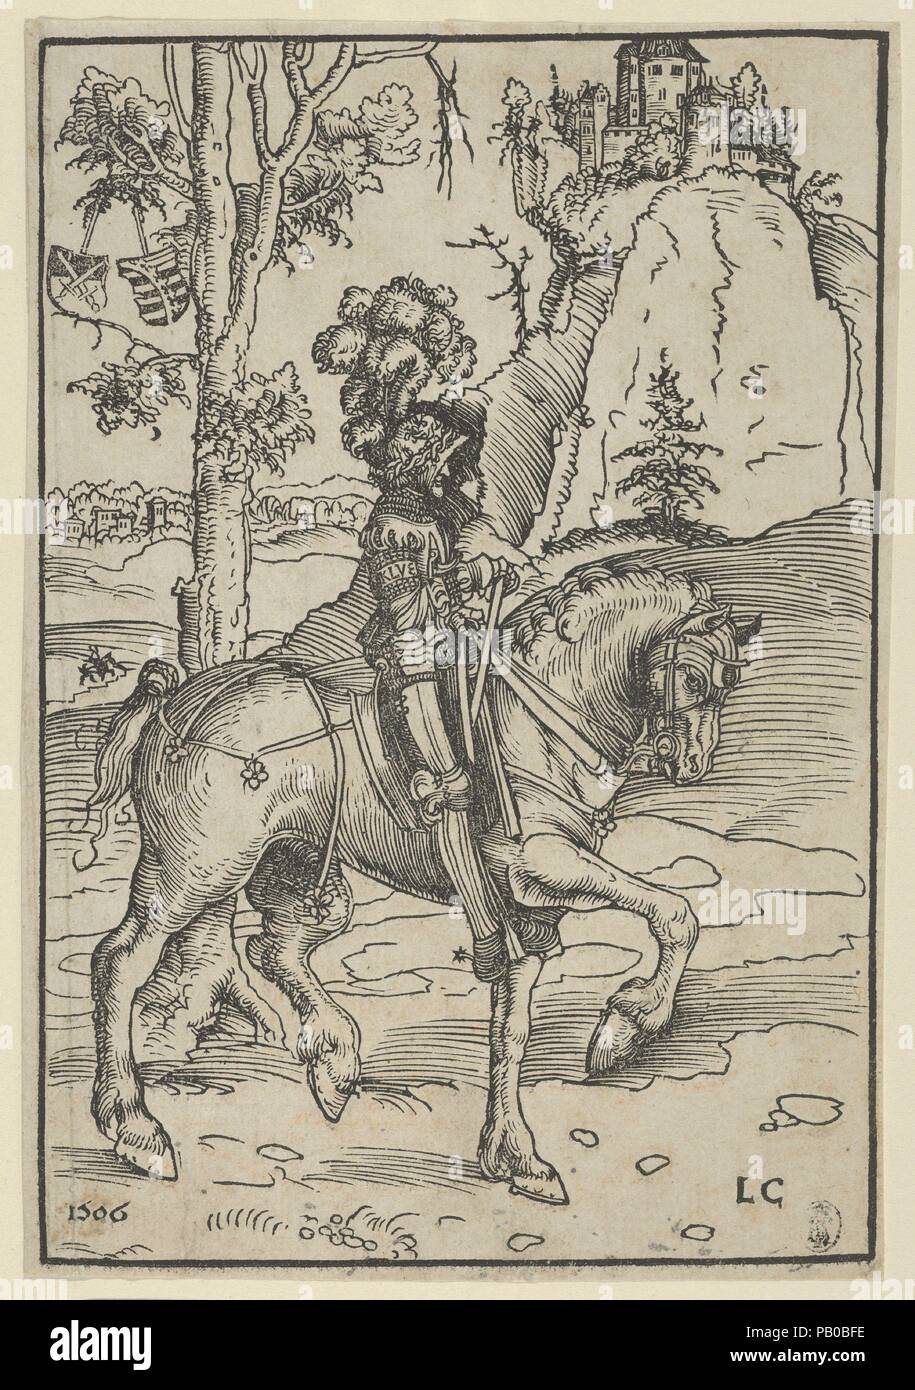 Artist: Lucas Cranach the Elder (German, Kronach 1472-1553 Weimar).  Dimensions: Sheet: 6 15/16 × 4 3/4 in. (17.7 × 12.1 cm). Date: 1506.